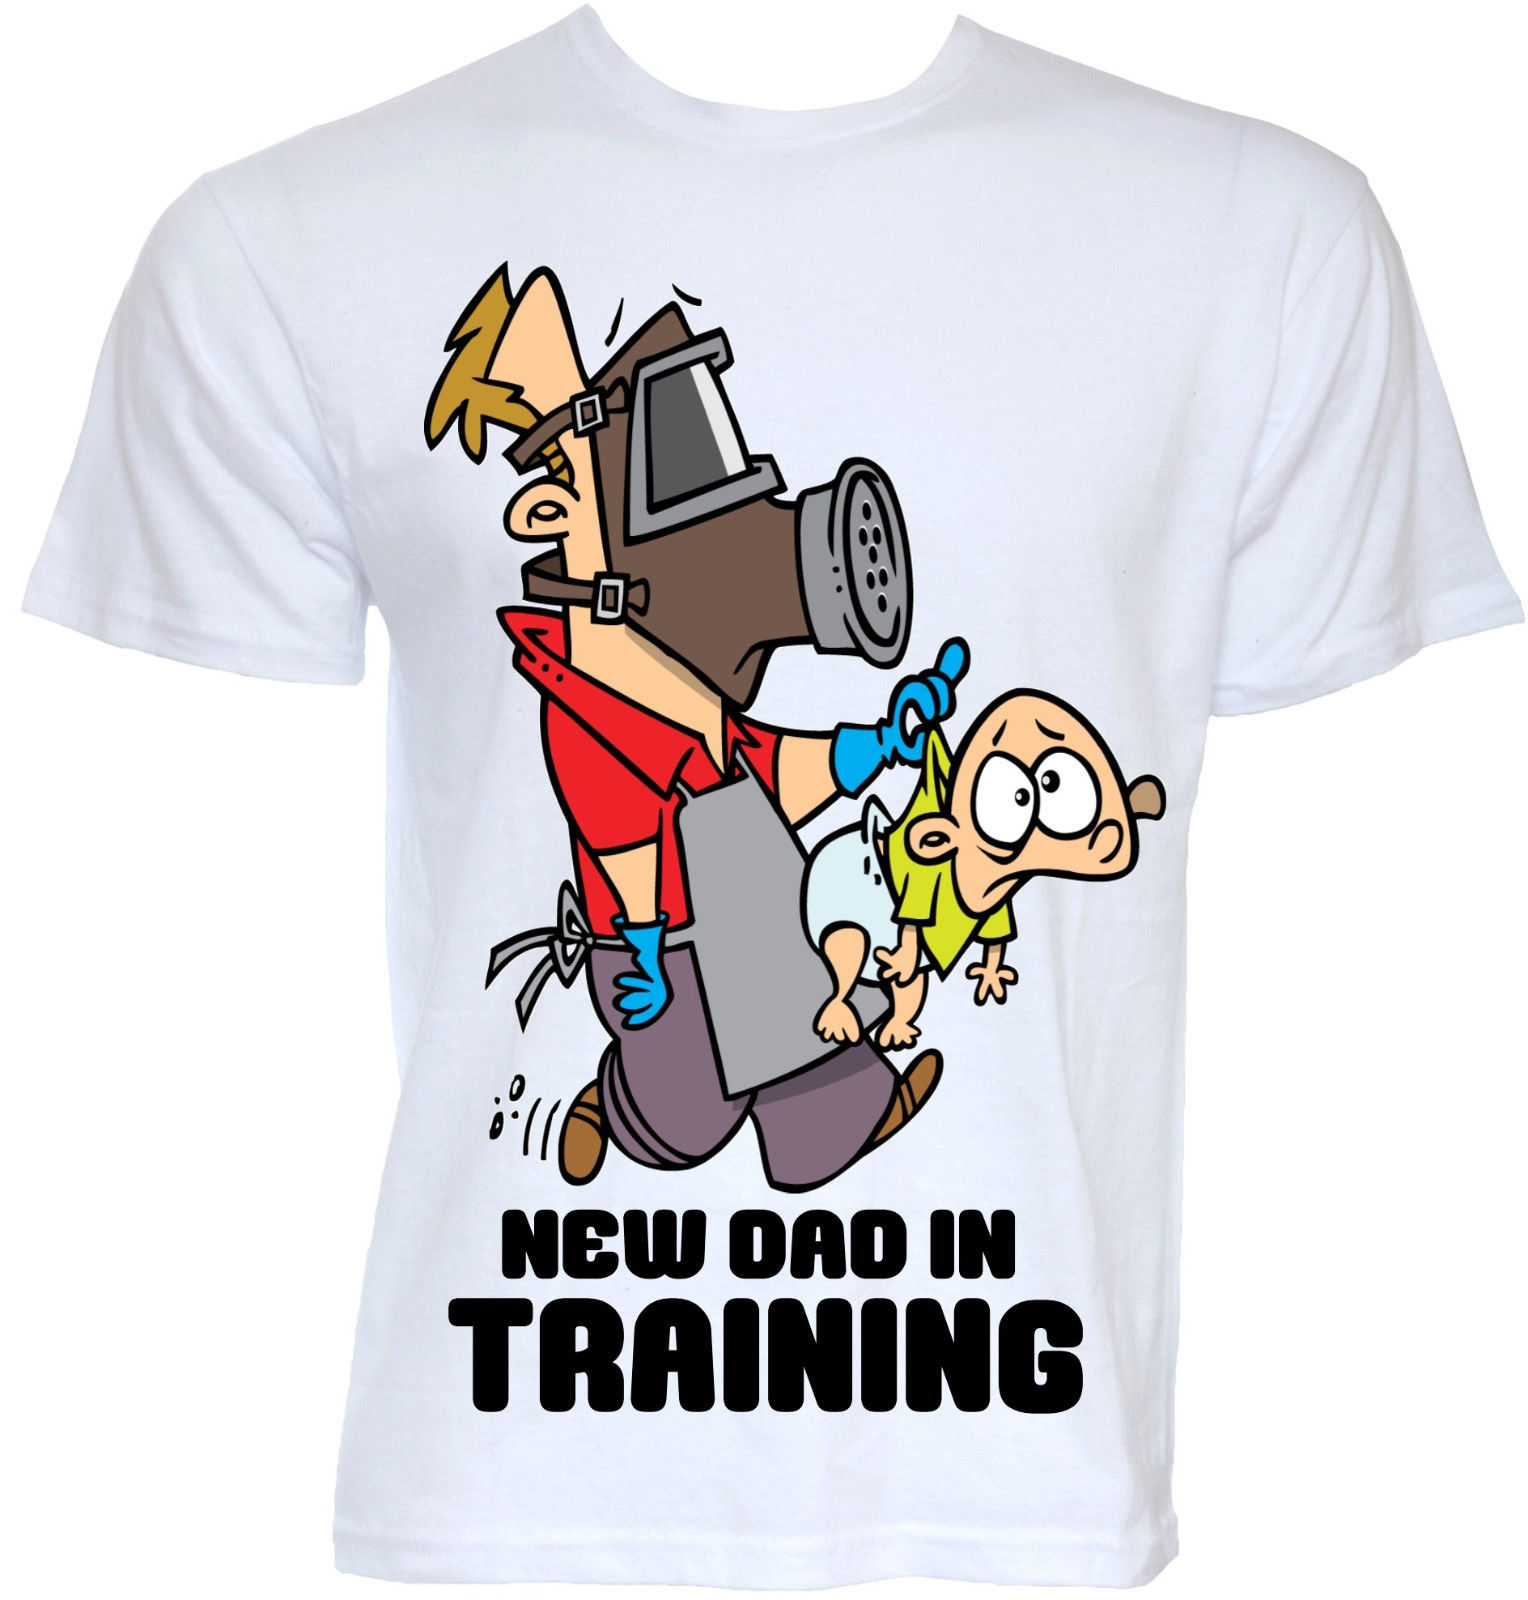 MENS FUNNY COOL NOVELTY NEW DADDY DAD T SHIRTS BABY SHOWER ...